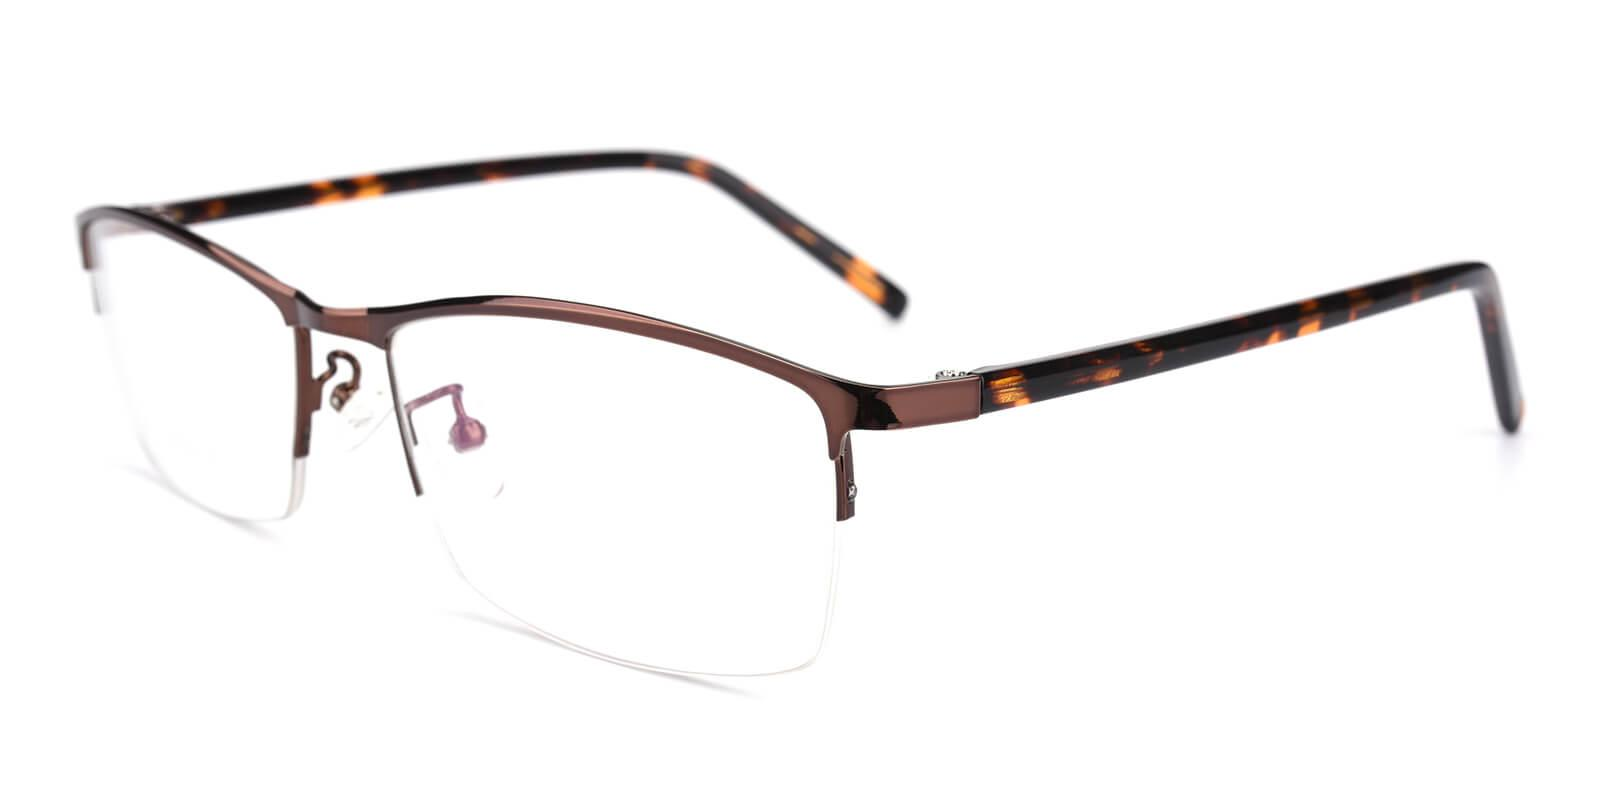 Elegant-Brown-Rectangle-Metal-Eyeglasses-additional1